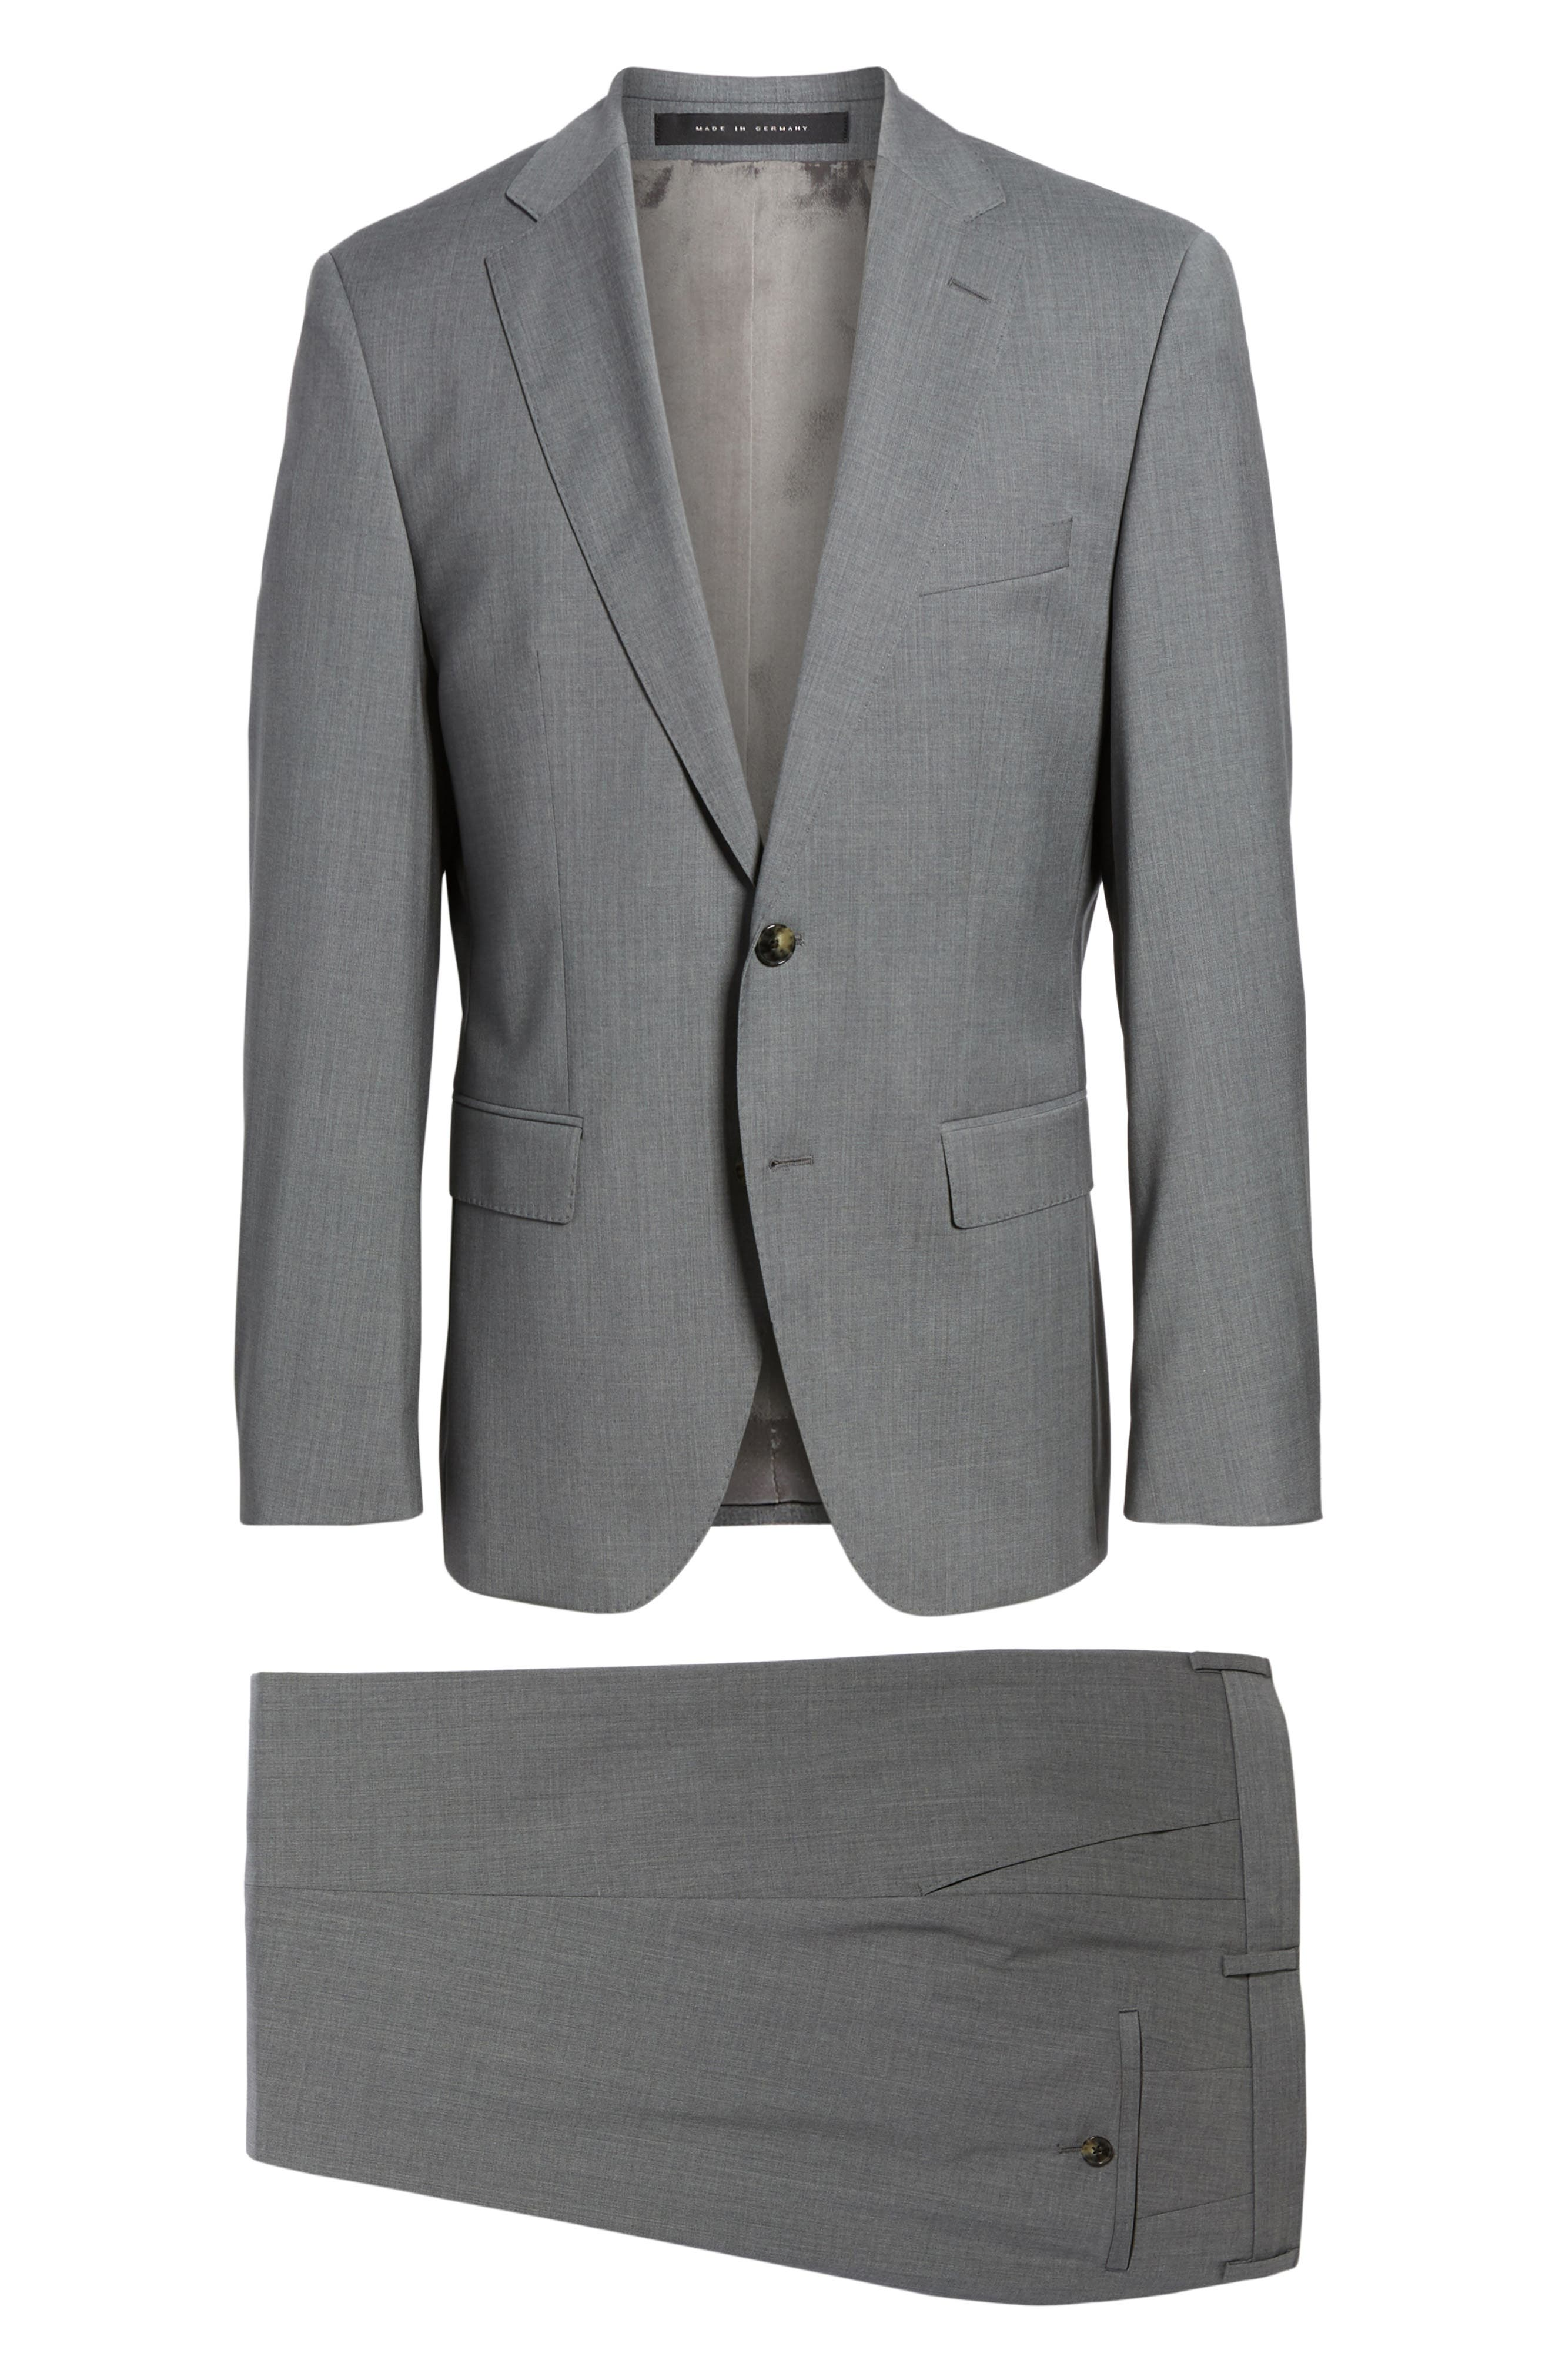 Johnstons/Lenon Classic Fit Solid Wool Suit,                             Alternate thumbnail 8, color,                             Medium Grey